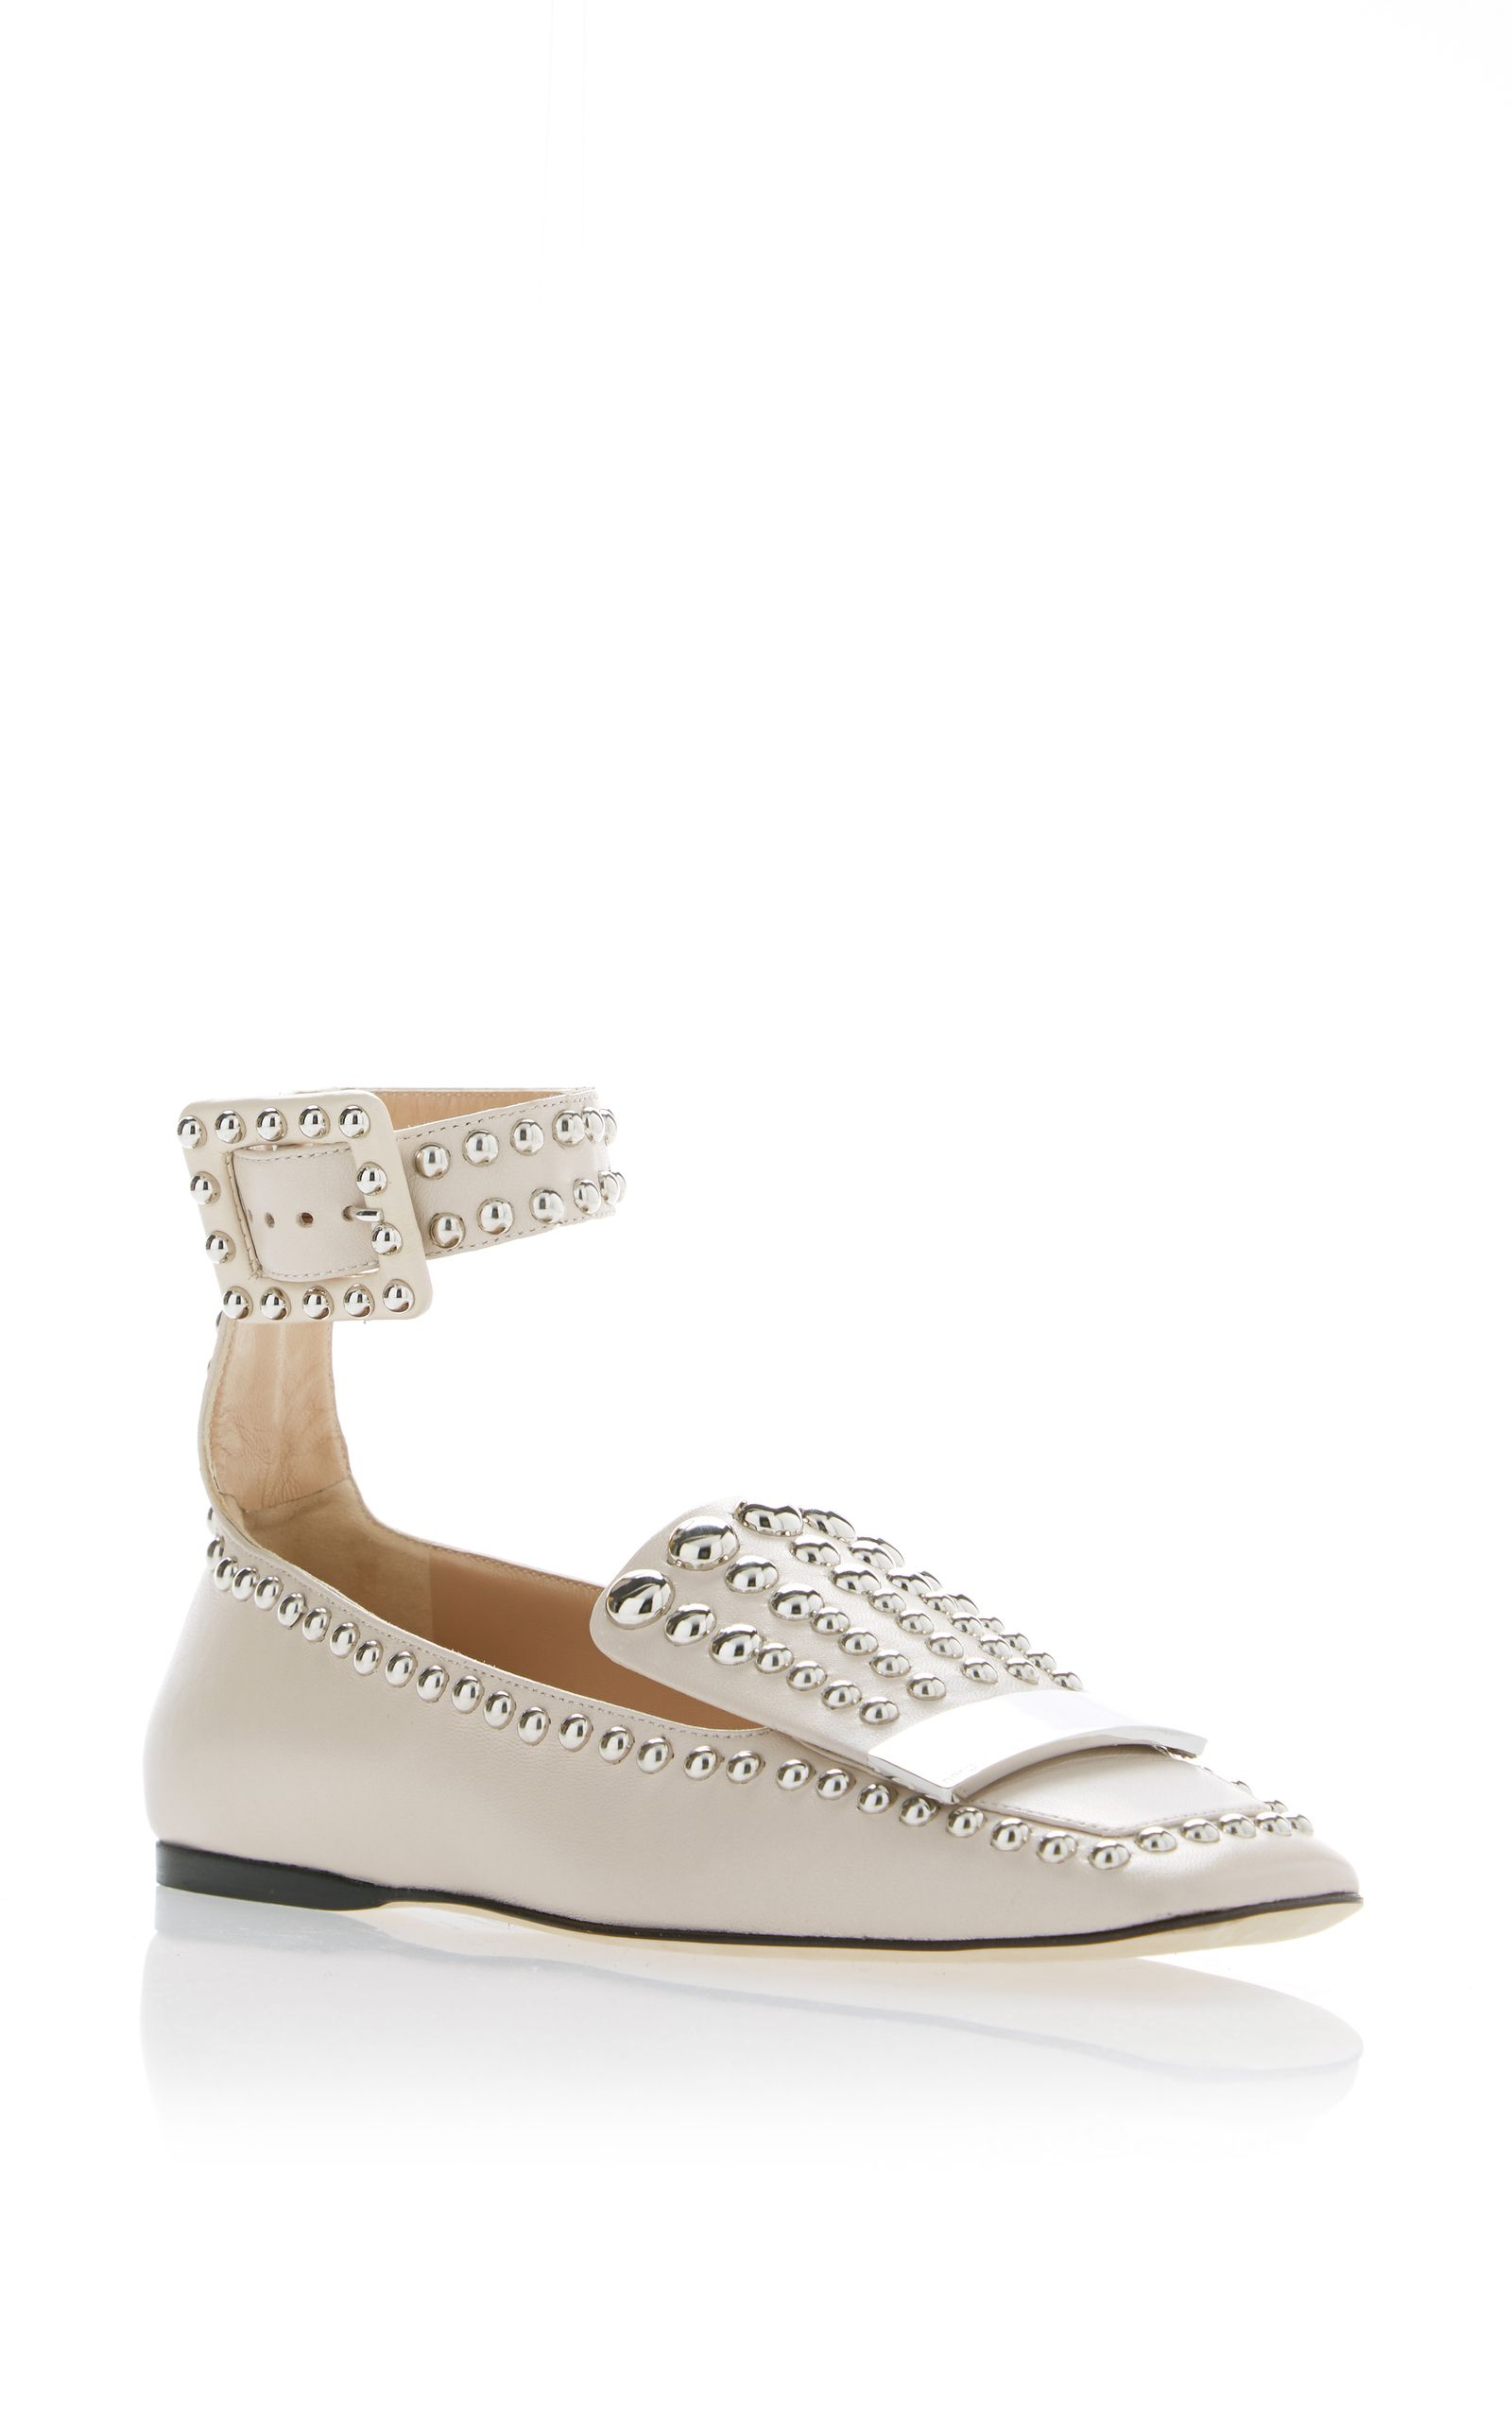 49563ad9a373 SR1 Studded Ankle Strap Loafer by SERGIO ROSSI for Preorder on Moda Operandi